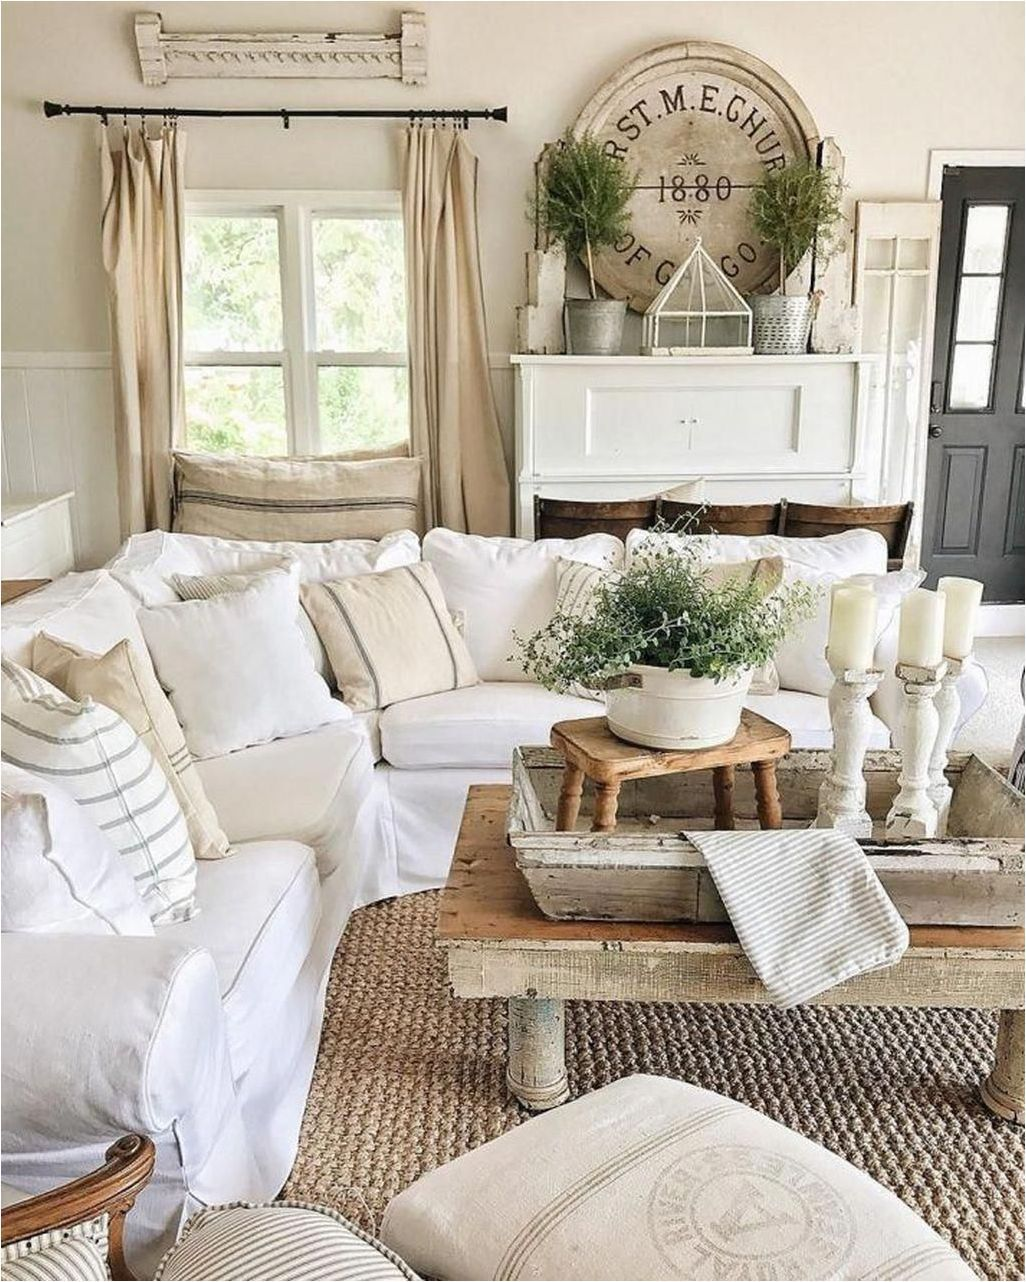 Home Decorating Ideas Dwelling Room Romantic And Cheap Chic Coastal Living Area Who Wo Living Room Designs Shabby Chic Living Room Farmhouse Decor Living Room